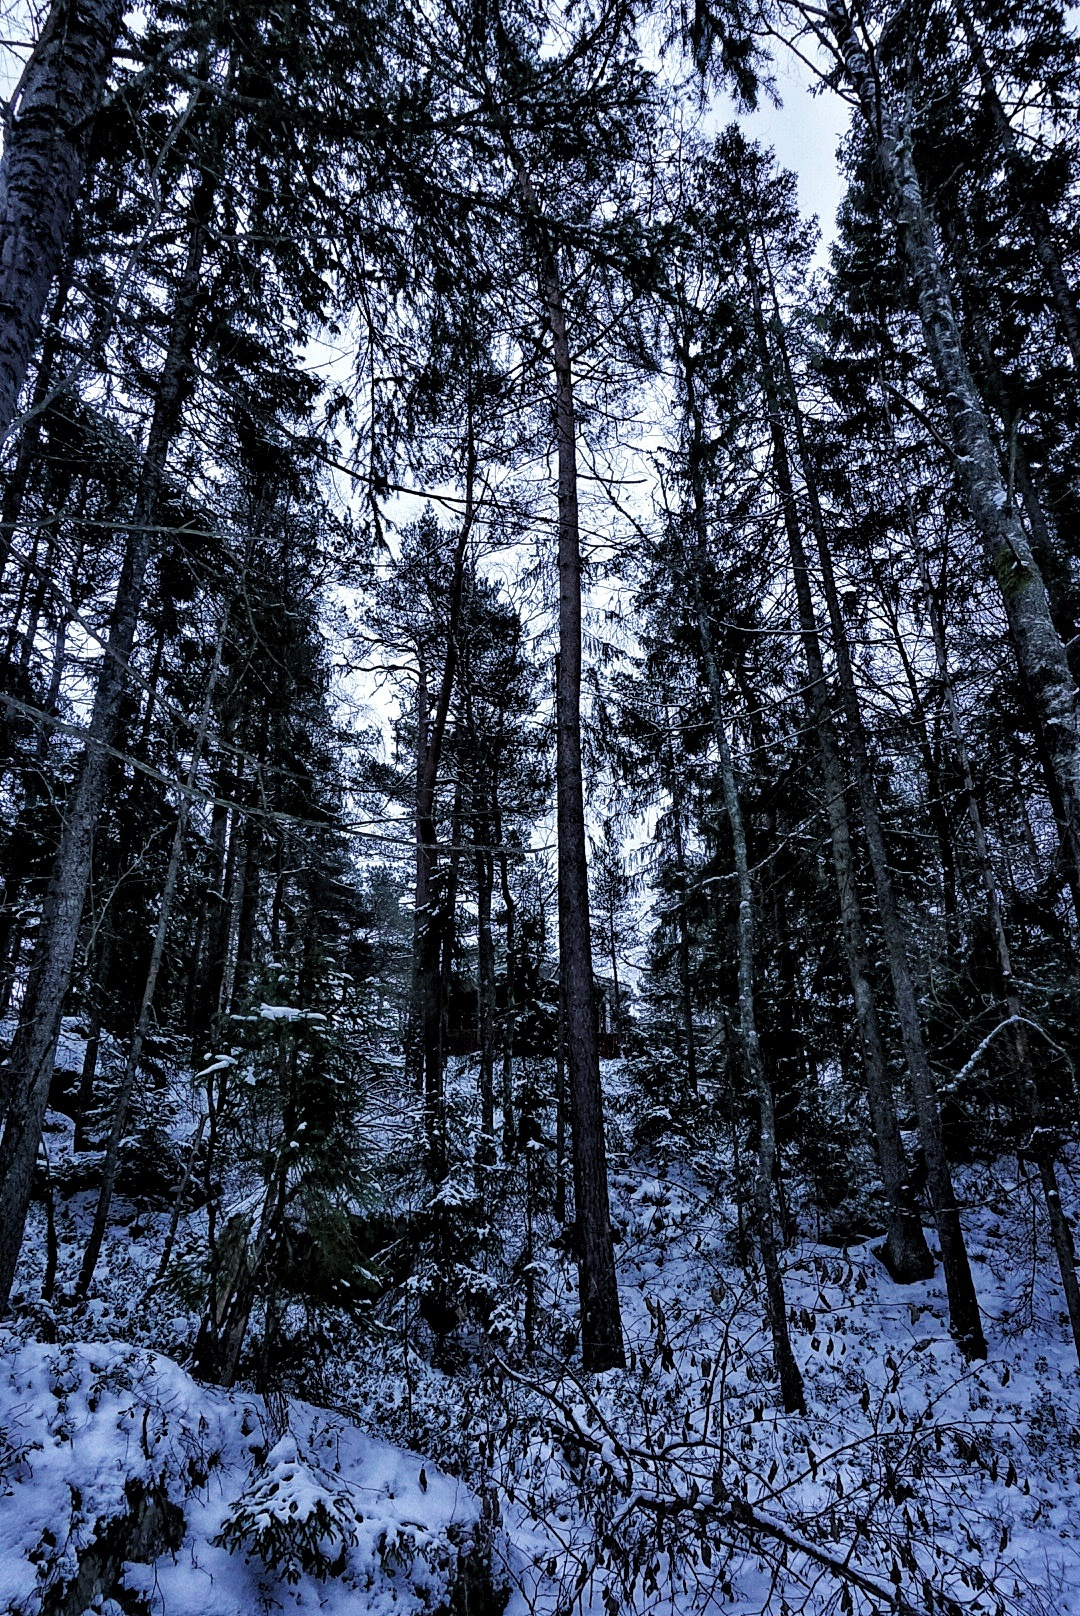 Forrest by kenneth.andersen.5245